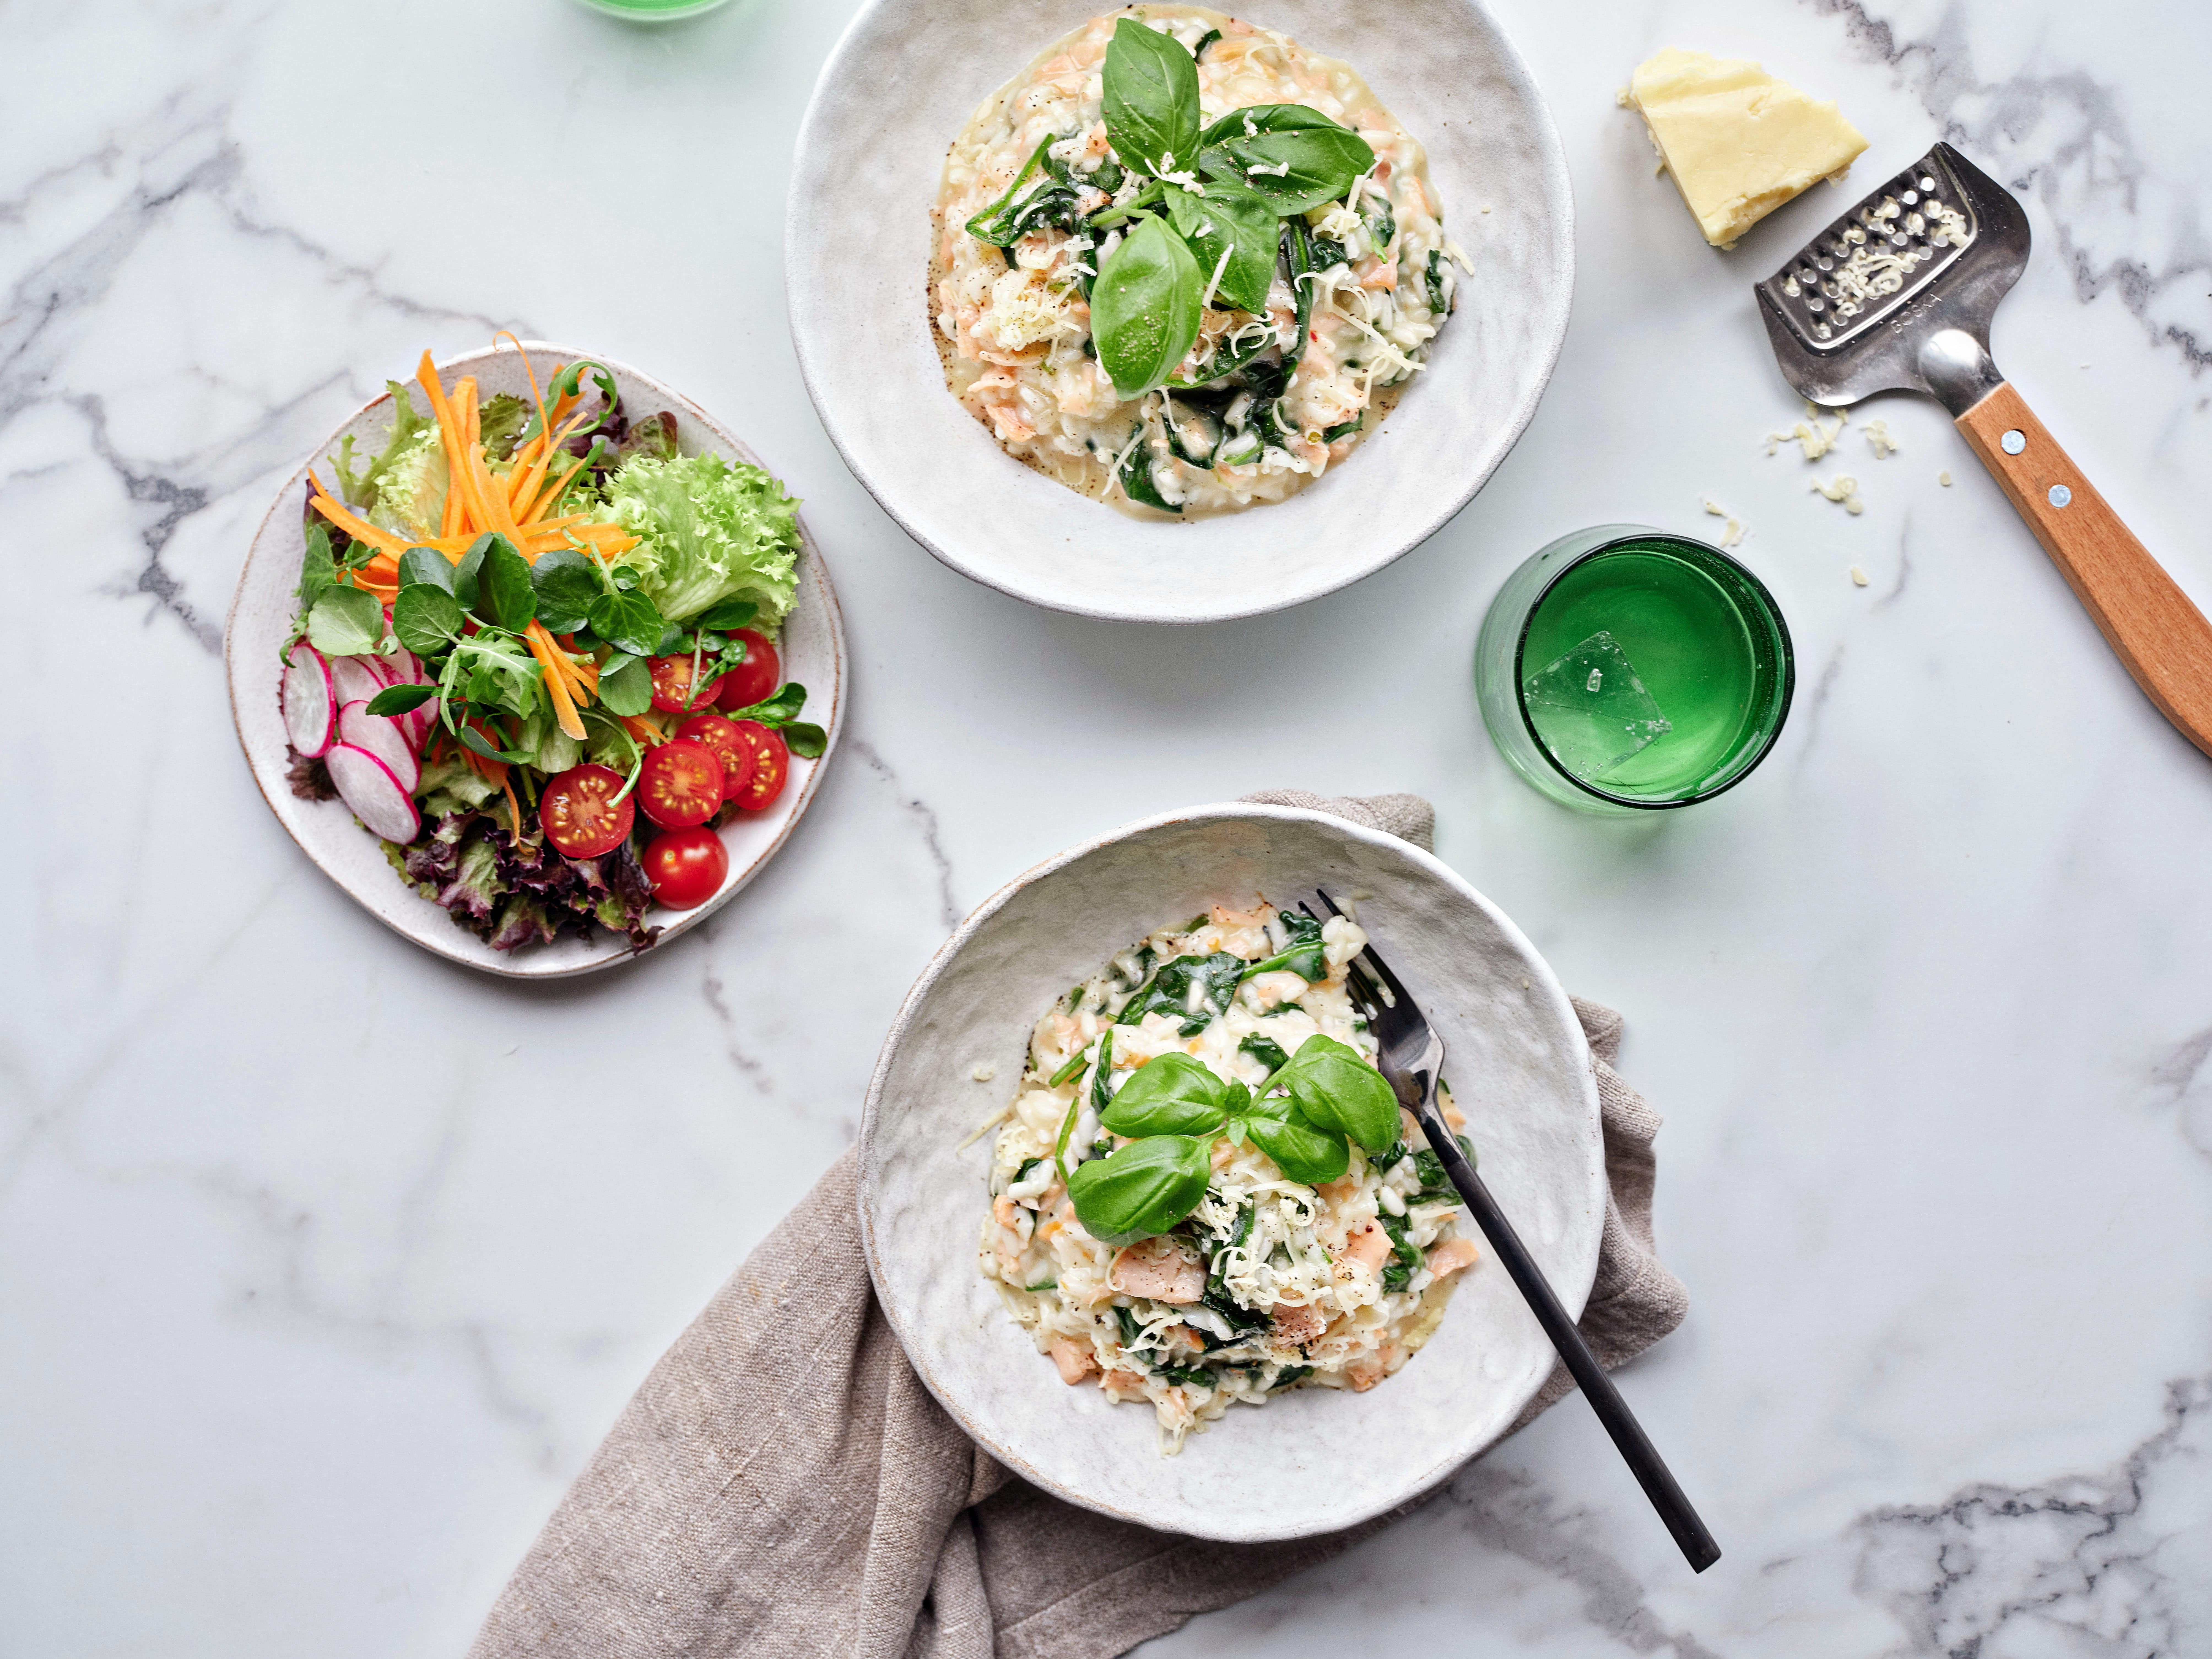 Organic Smoked Salmon and Spinach Risotto